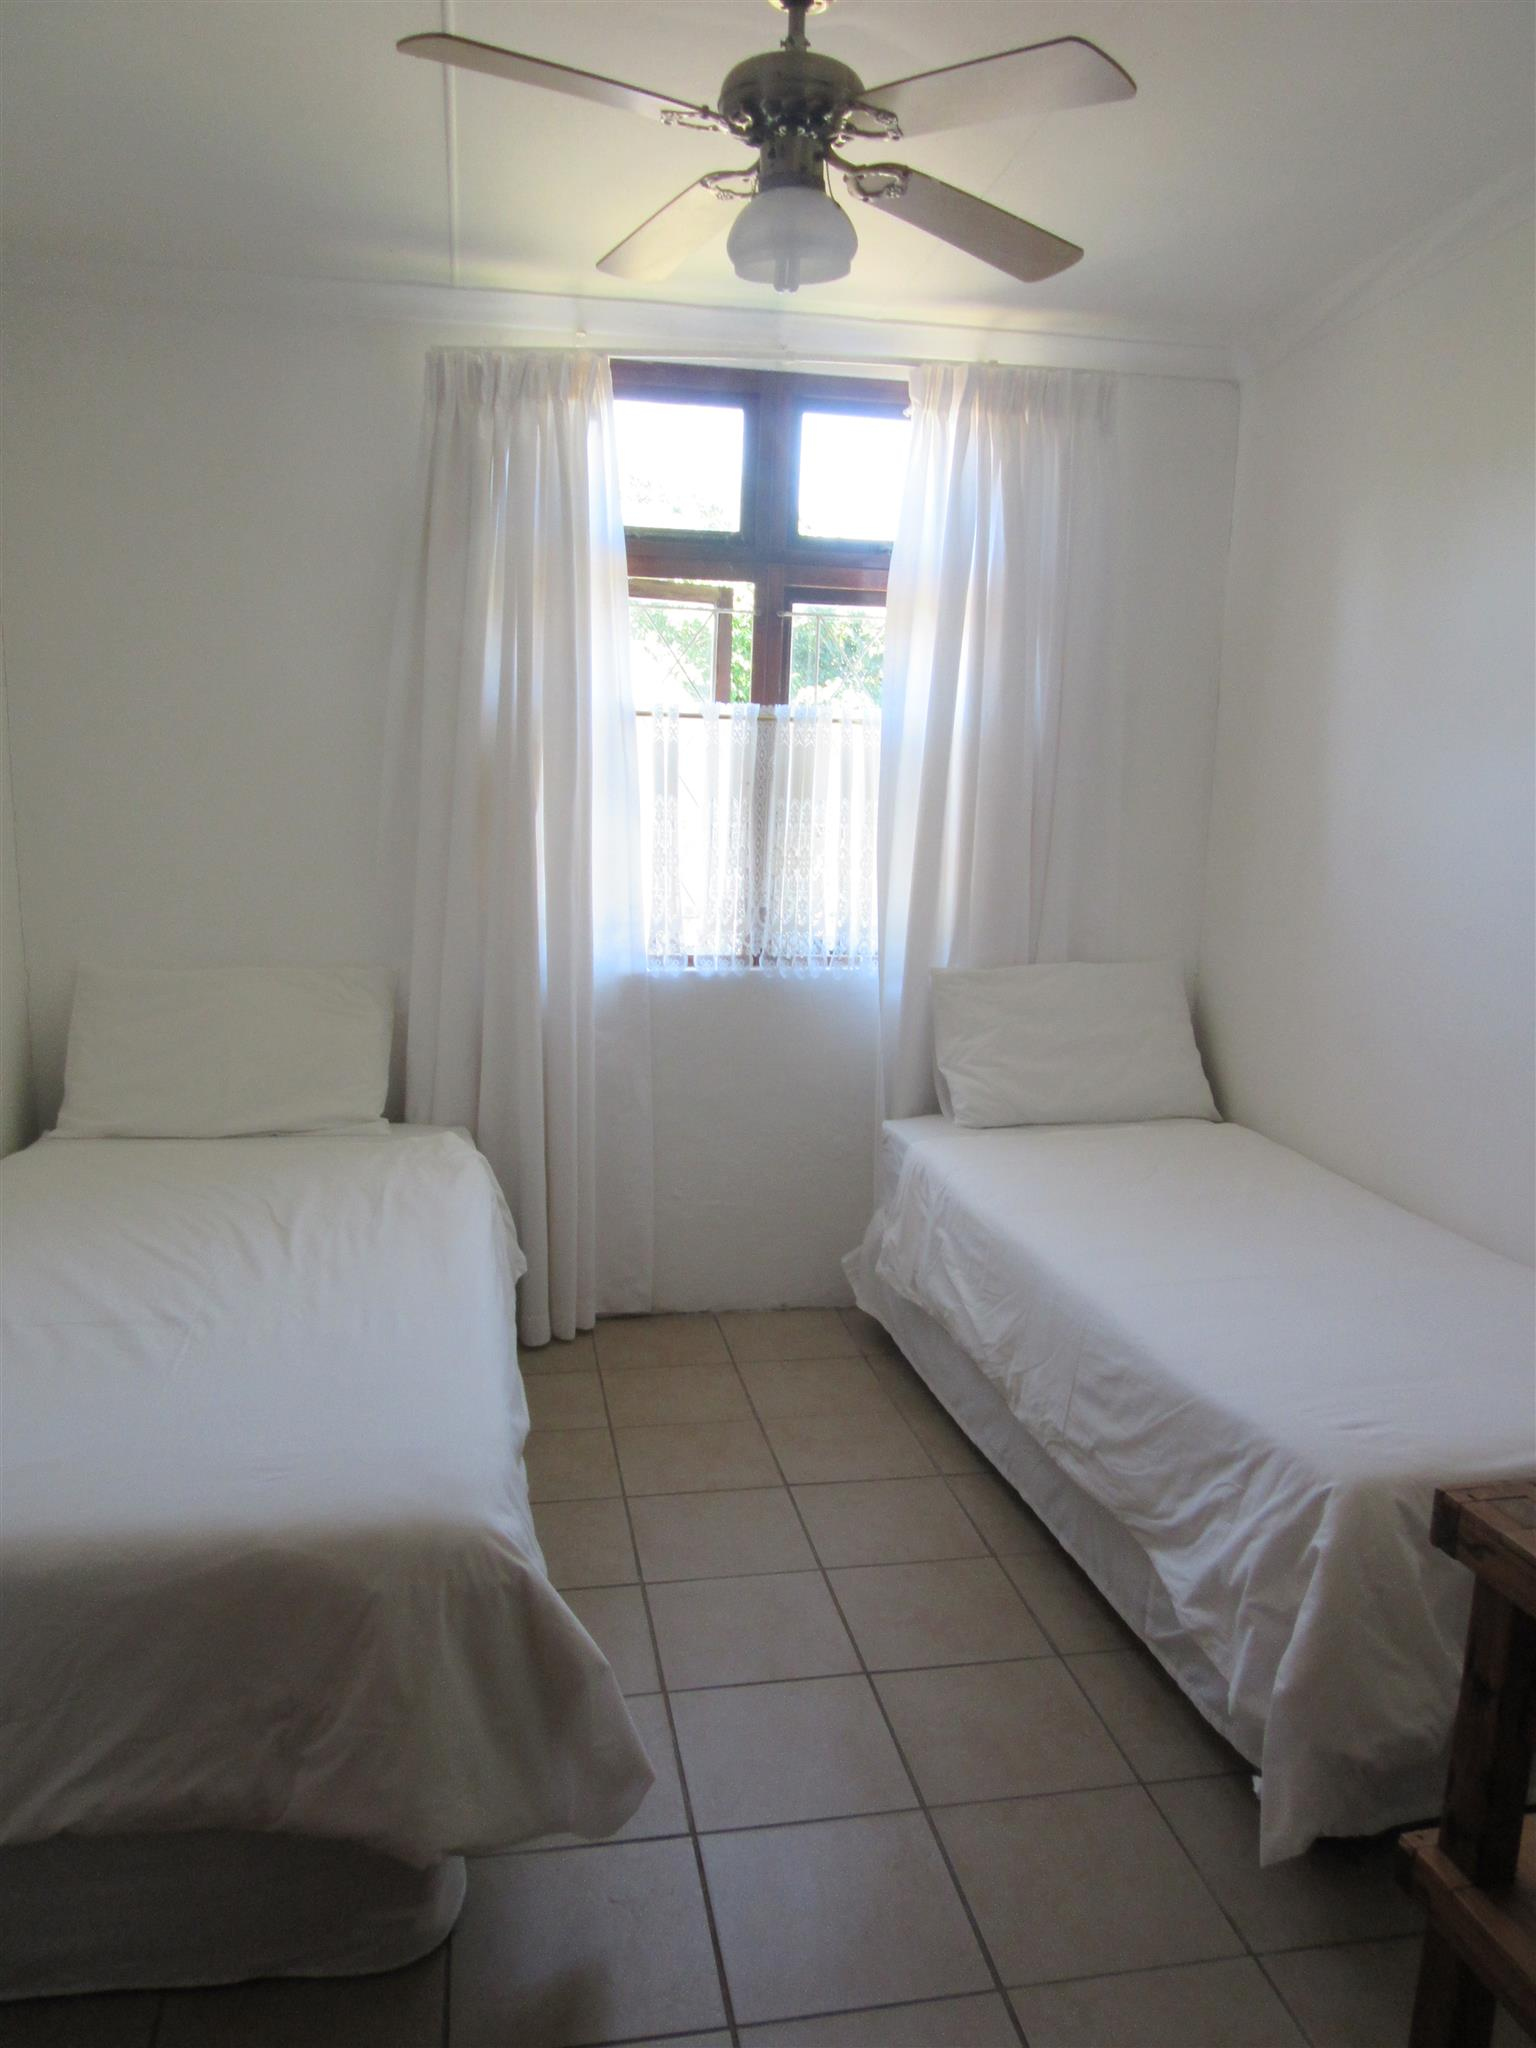 COMPANY EMPLOYEES, STAFF, CONTRACTORS FULL FURNISHED 1 TO 12 SLEEPER HOUSES, AND FLATS TO RENT UMTENTWENI PORT SHEPSTONE